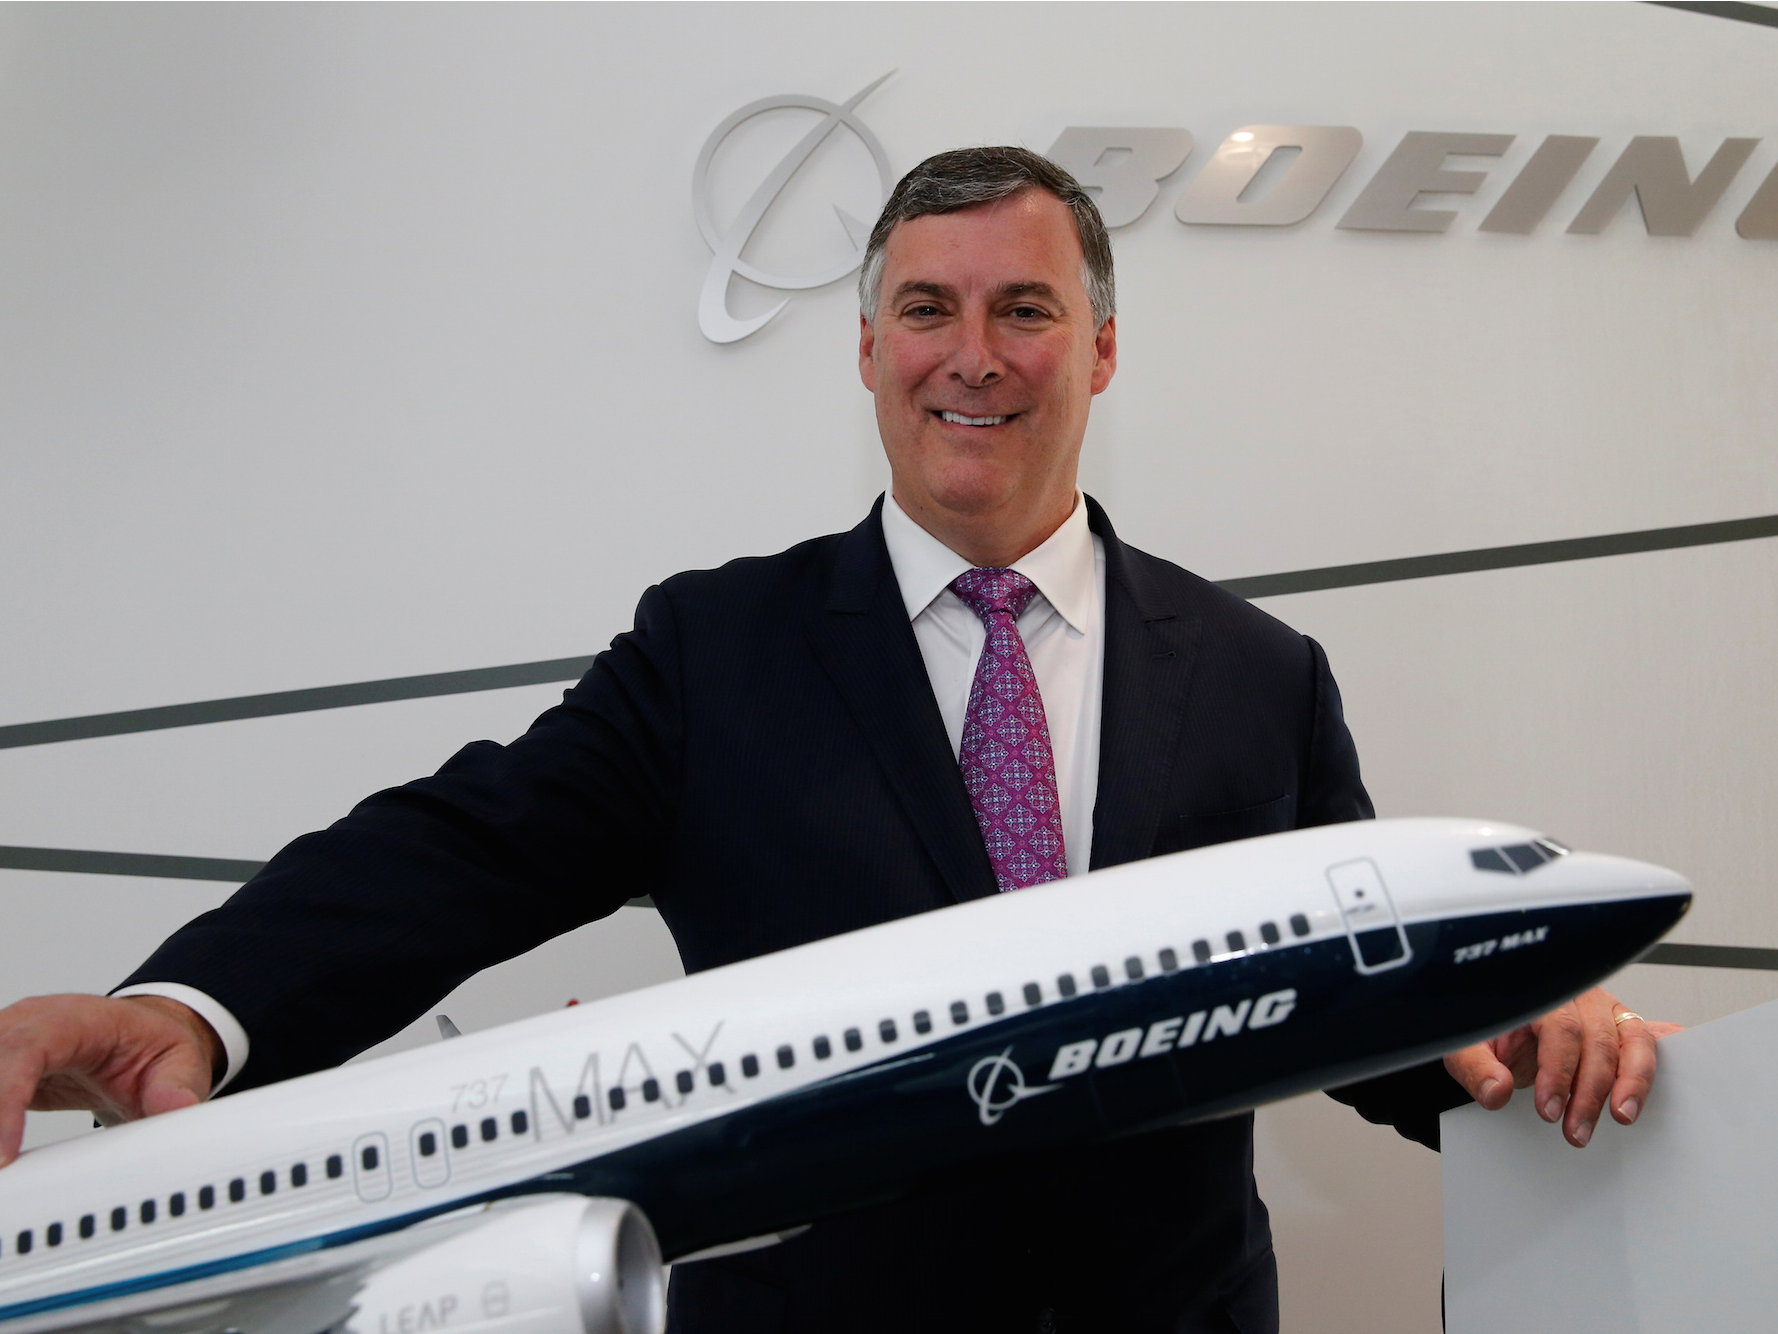 Boeing CEO attacks Canadian rival claiming they destroyed the market for its planes